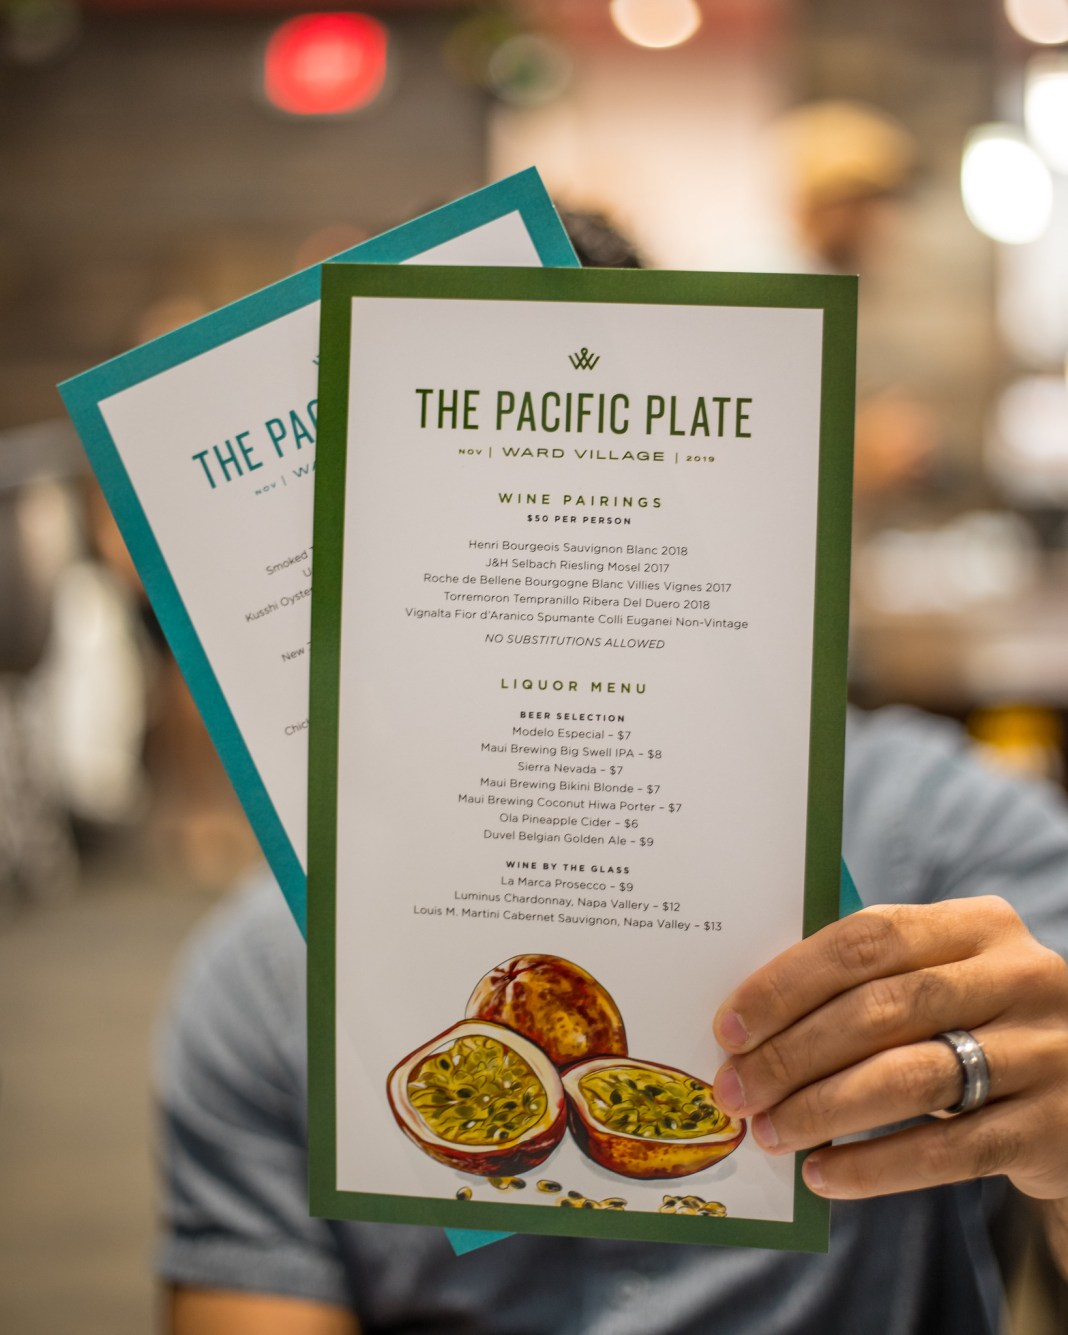 The Pacific Plate by Ward Village